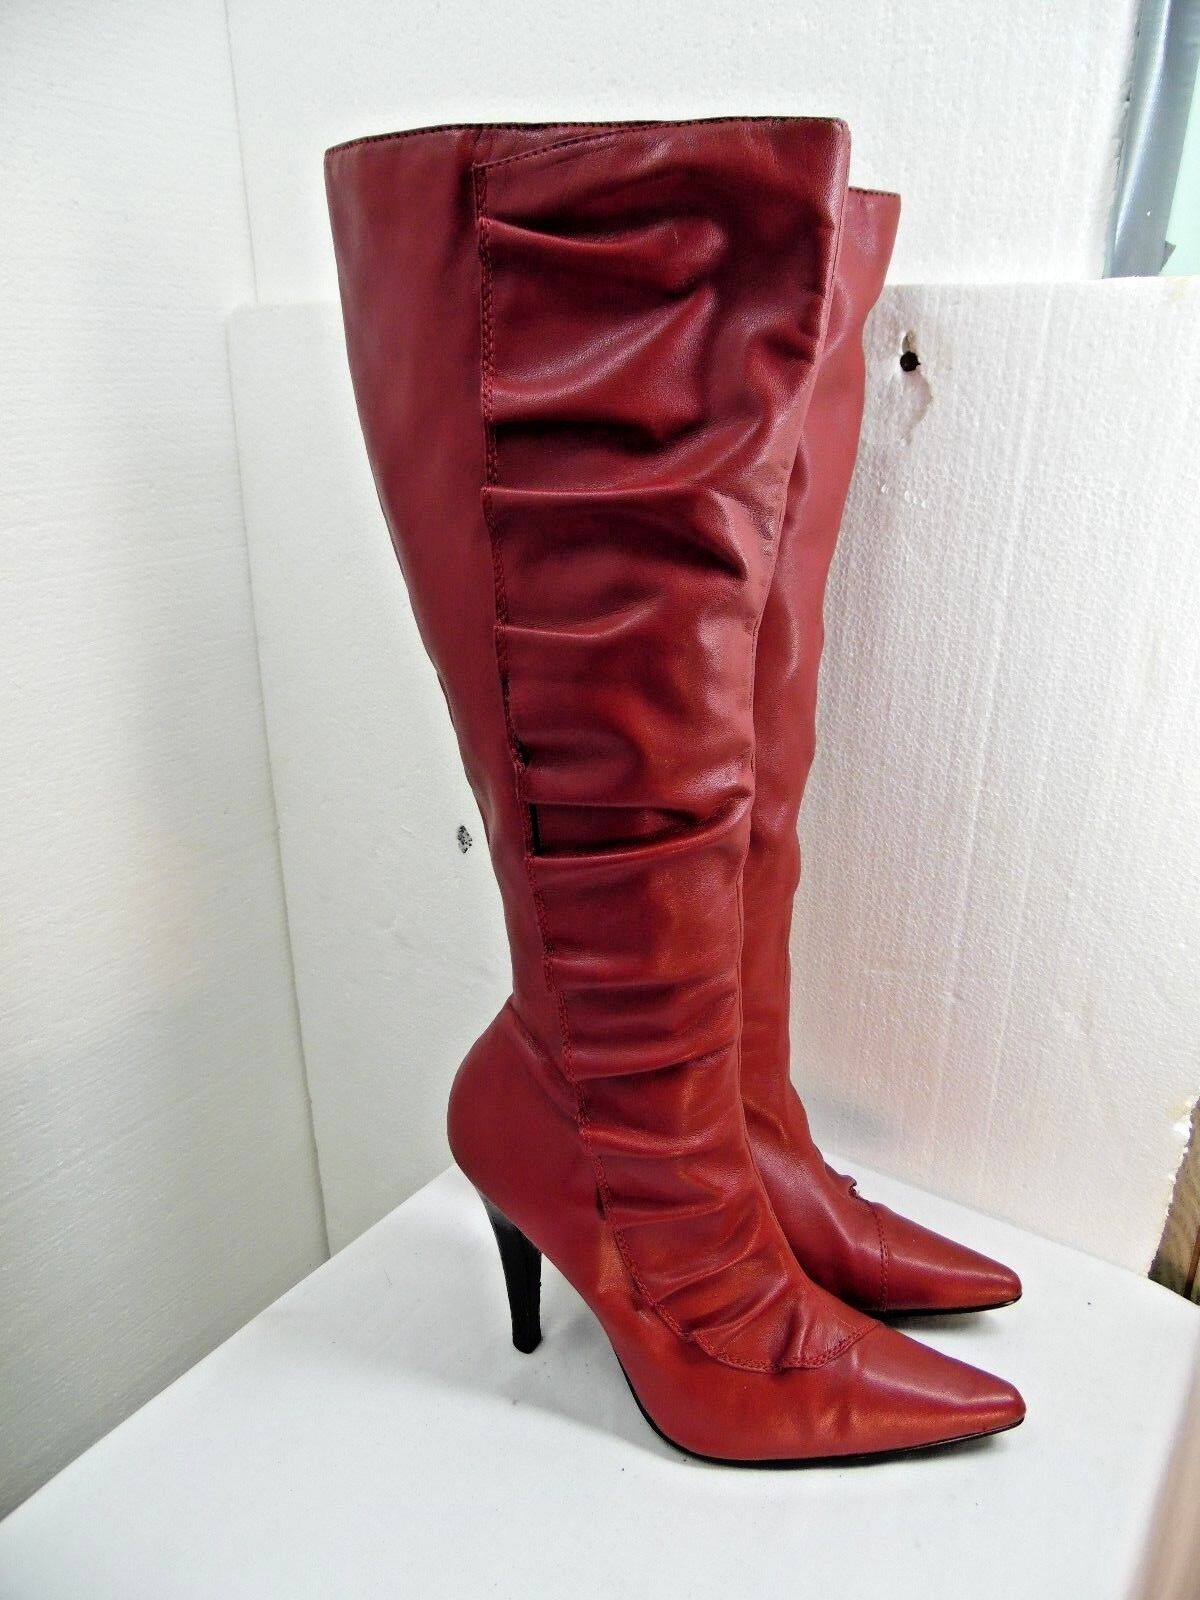 WOMENS DIBA BRAND BOOTS SIZE 7 REDIS BROWN COLOR TALL BOOT  ii2